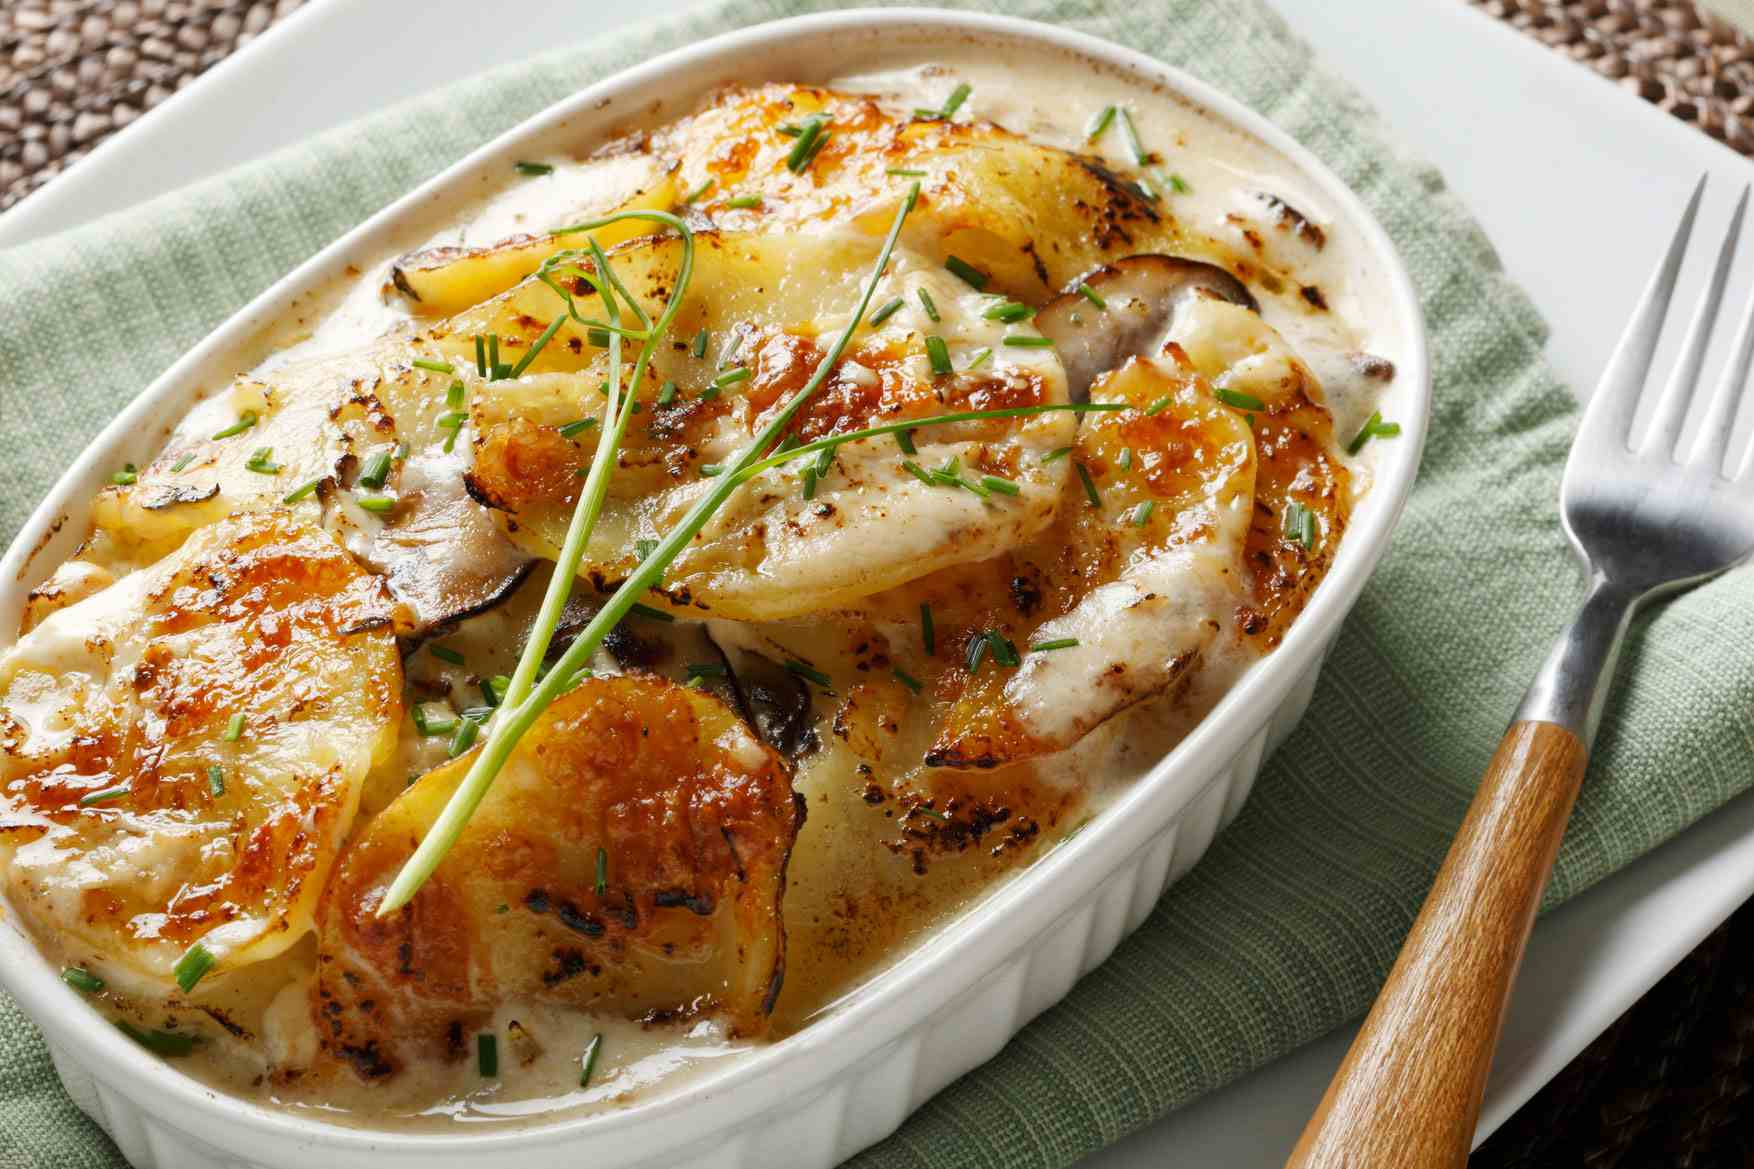 Spicy scalloped potatoes